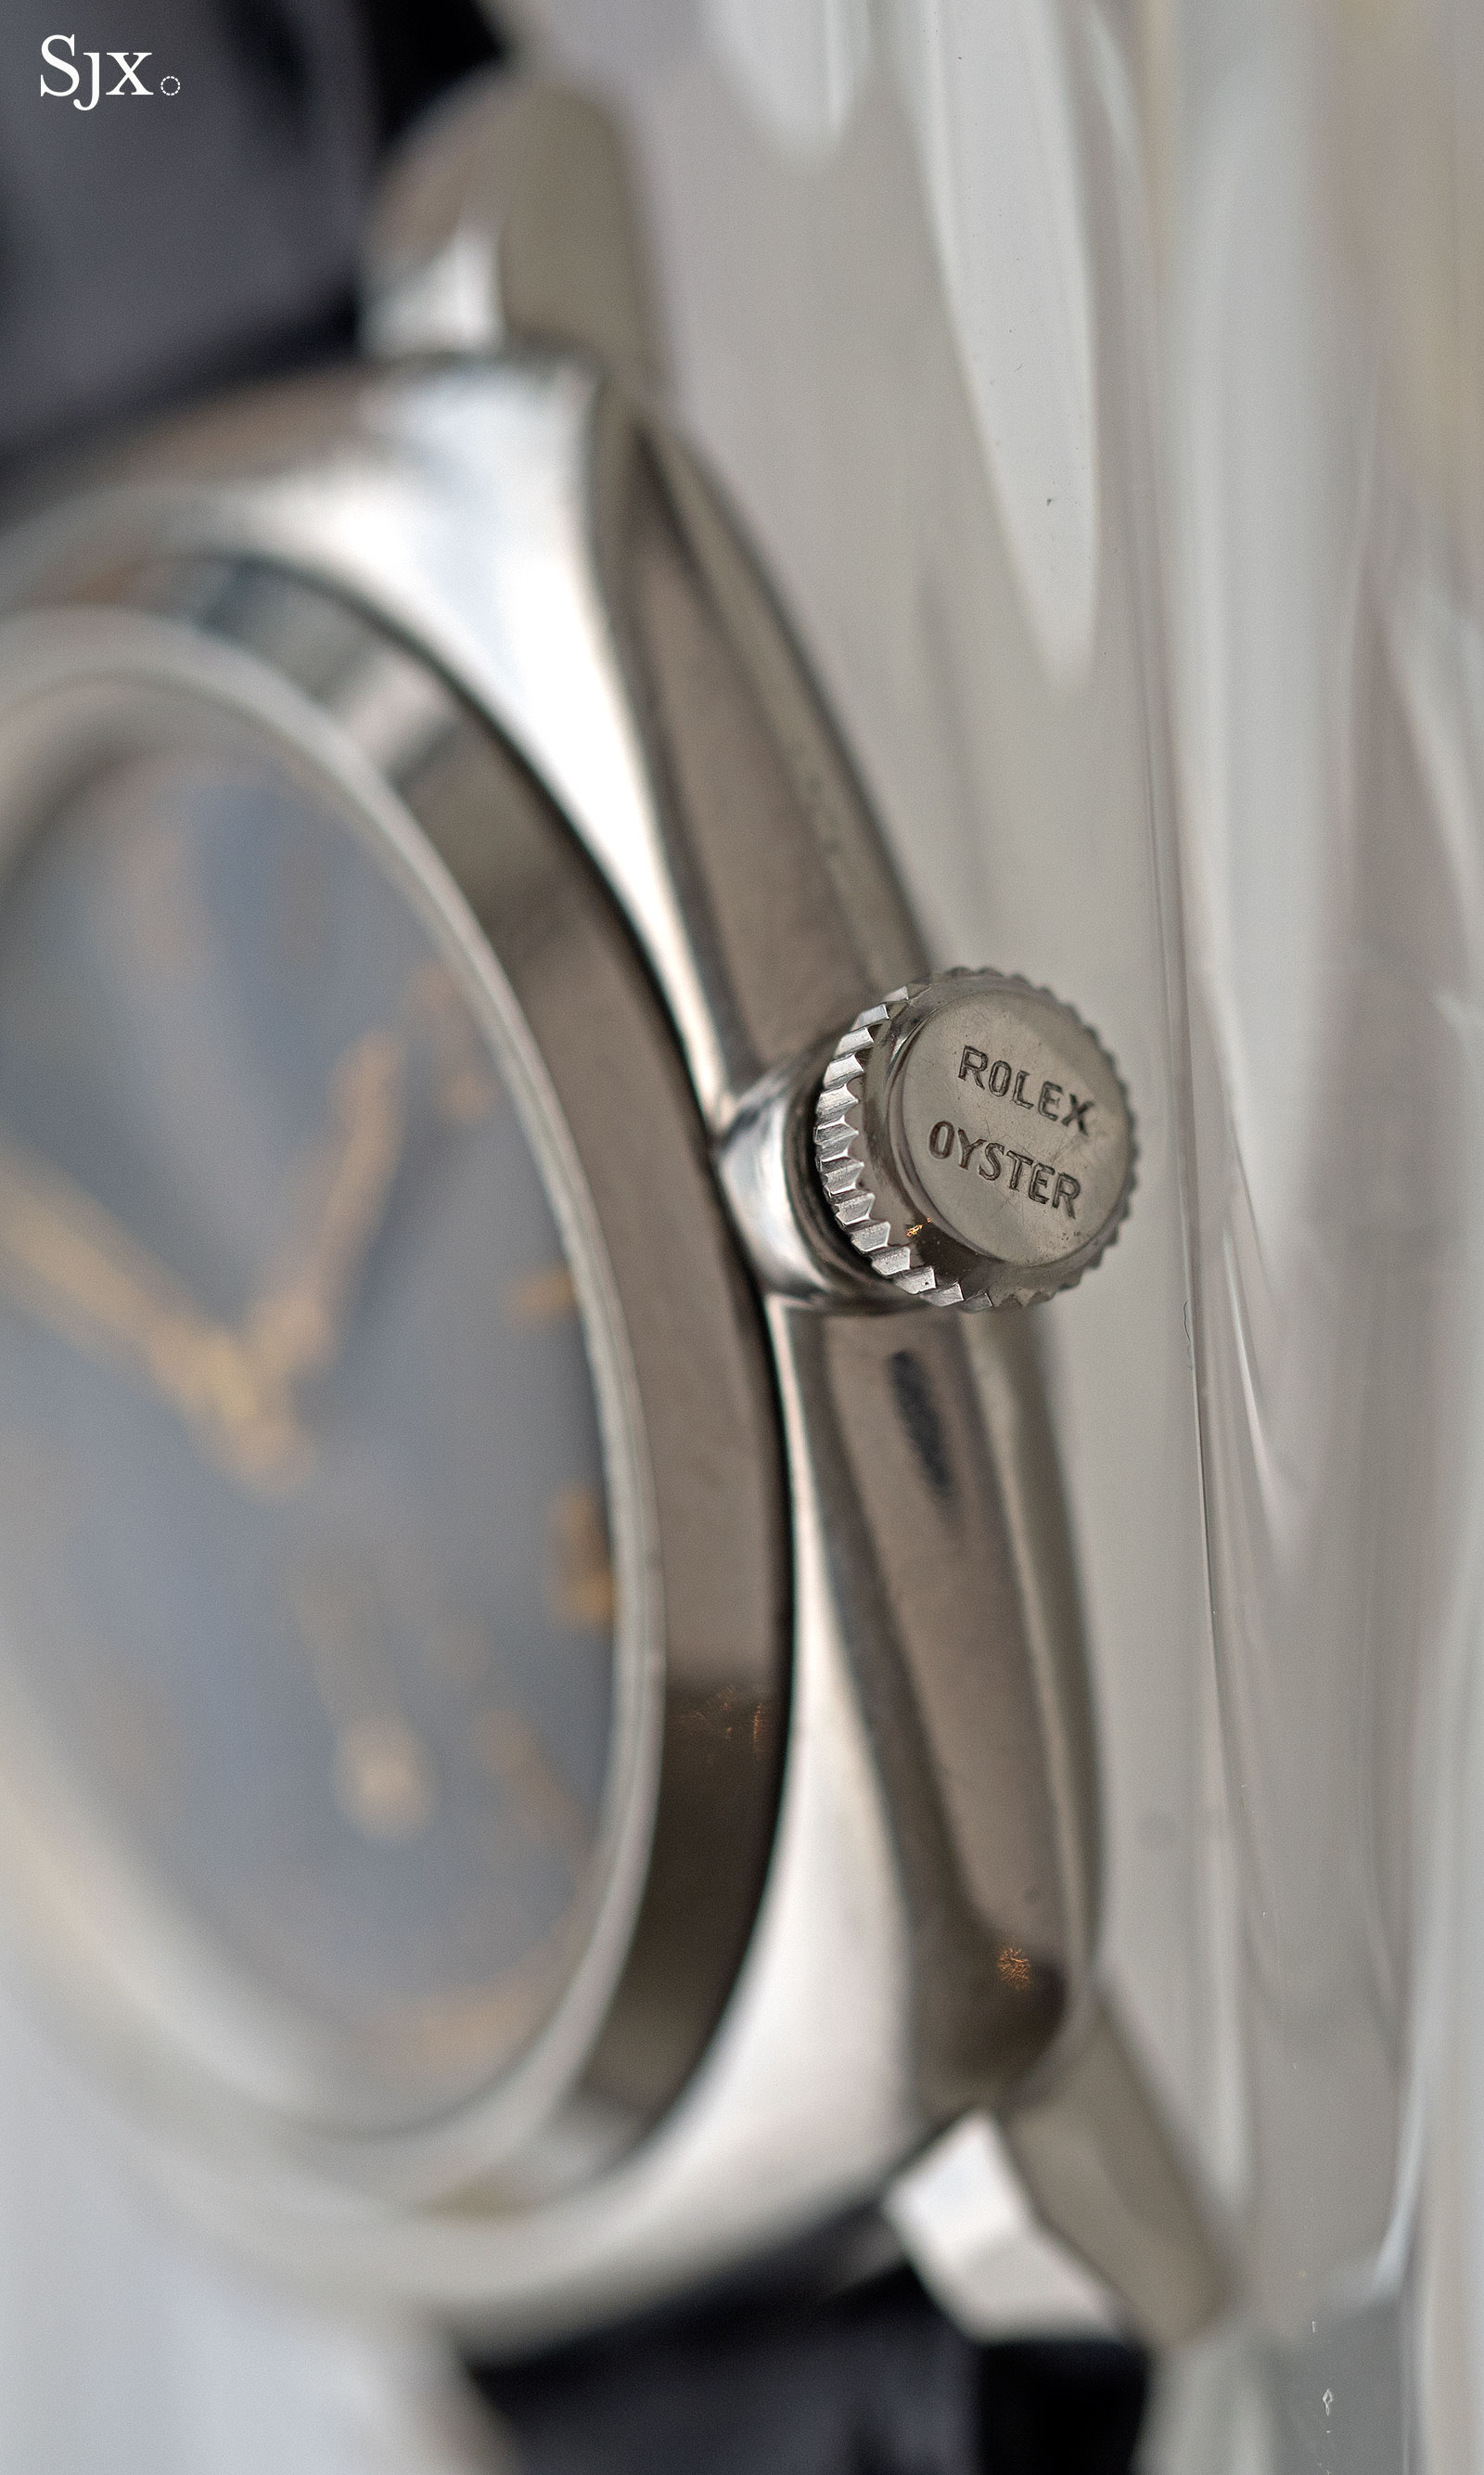 Rolex Oyster Imperial 5